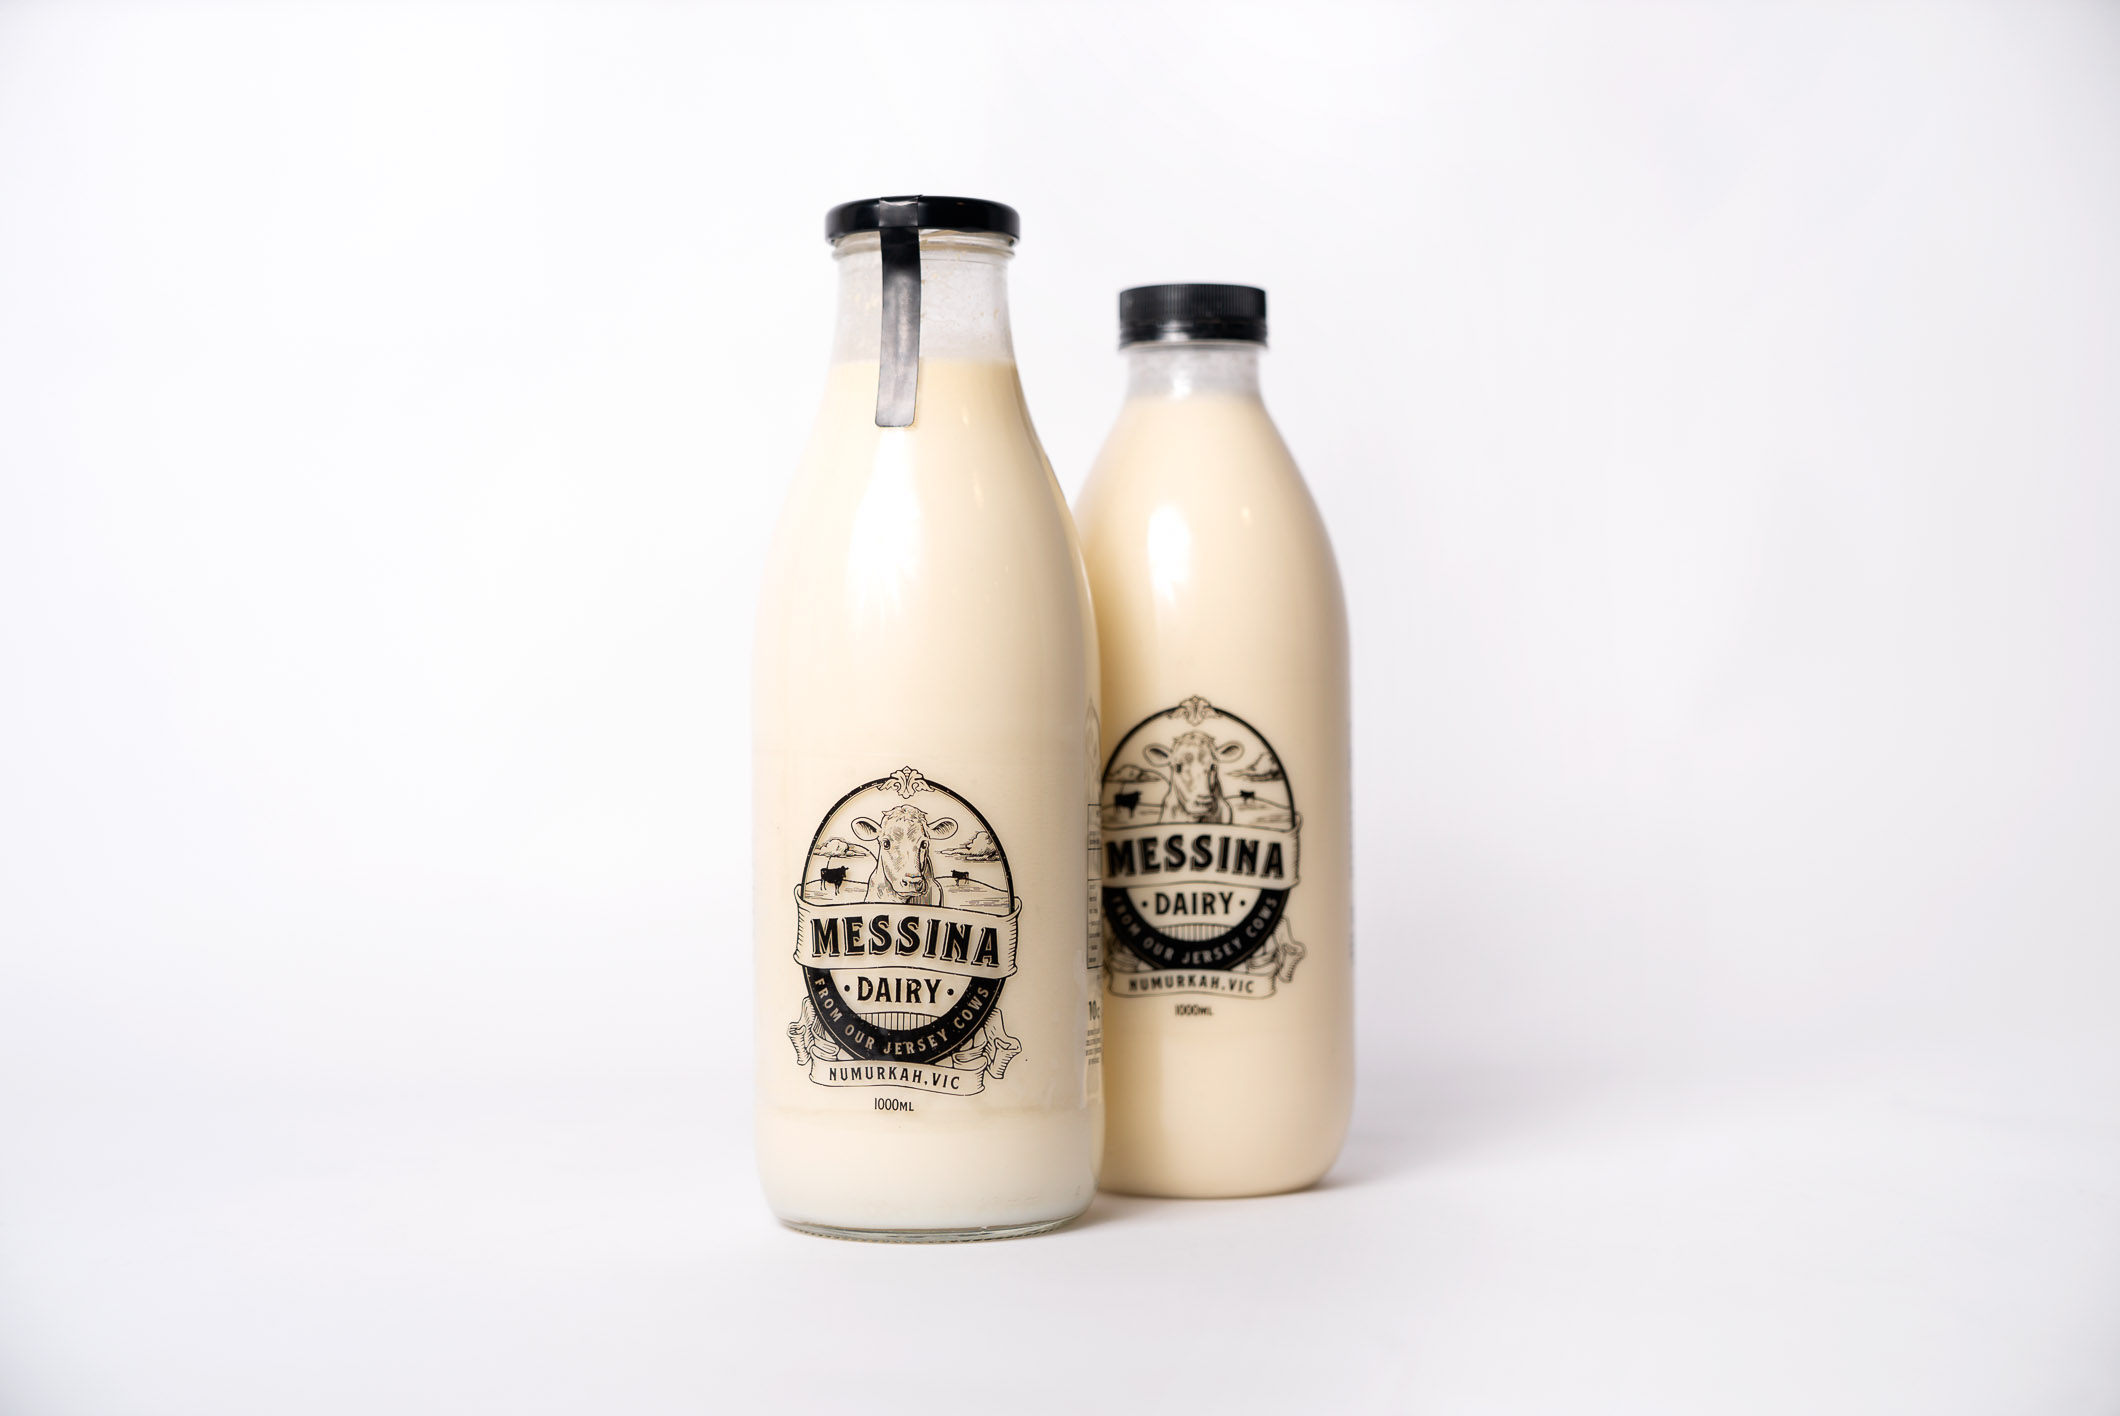 Messina Jersey Milk Is A State Winner In The 2020 Delicious Produce Awards